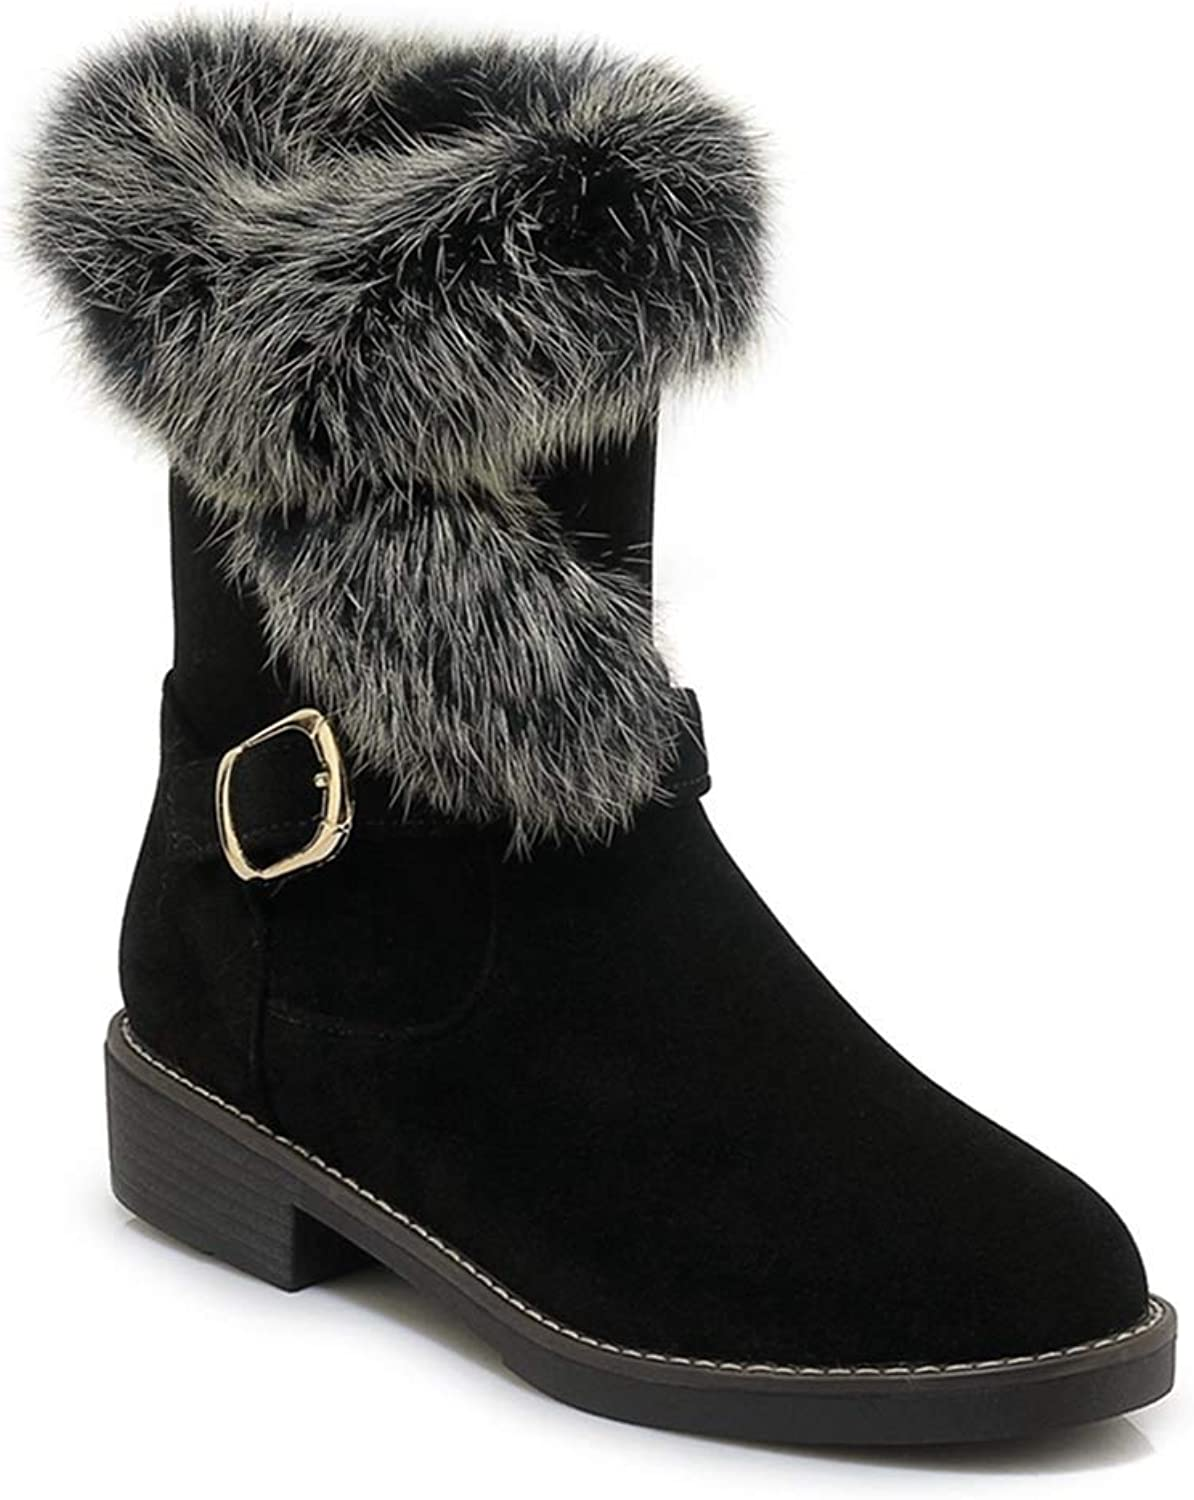 Fashion shoesbox Women's Winter Warm Fur Snow Ankle Booties Waterproof Suede Short Boots Low Heel Buckle Snow Boots